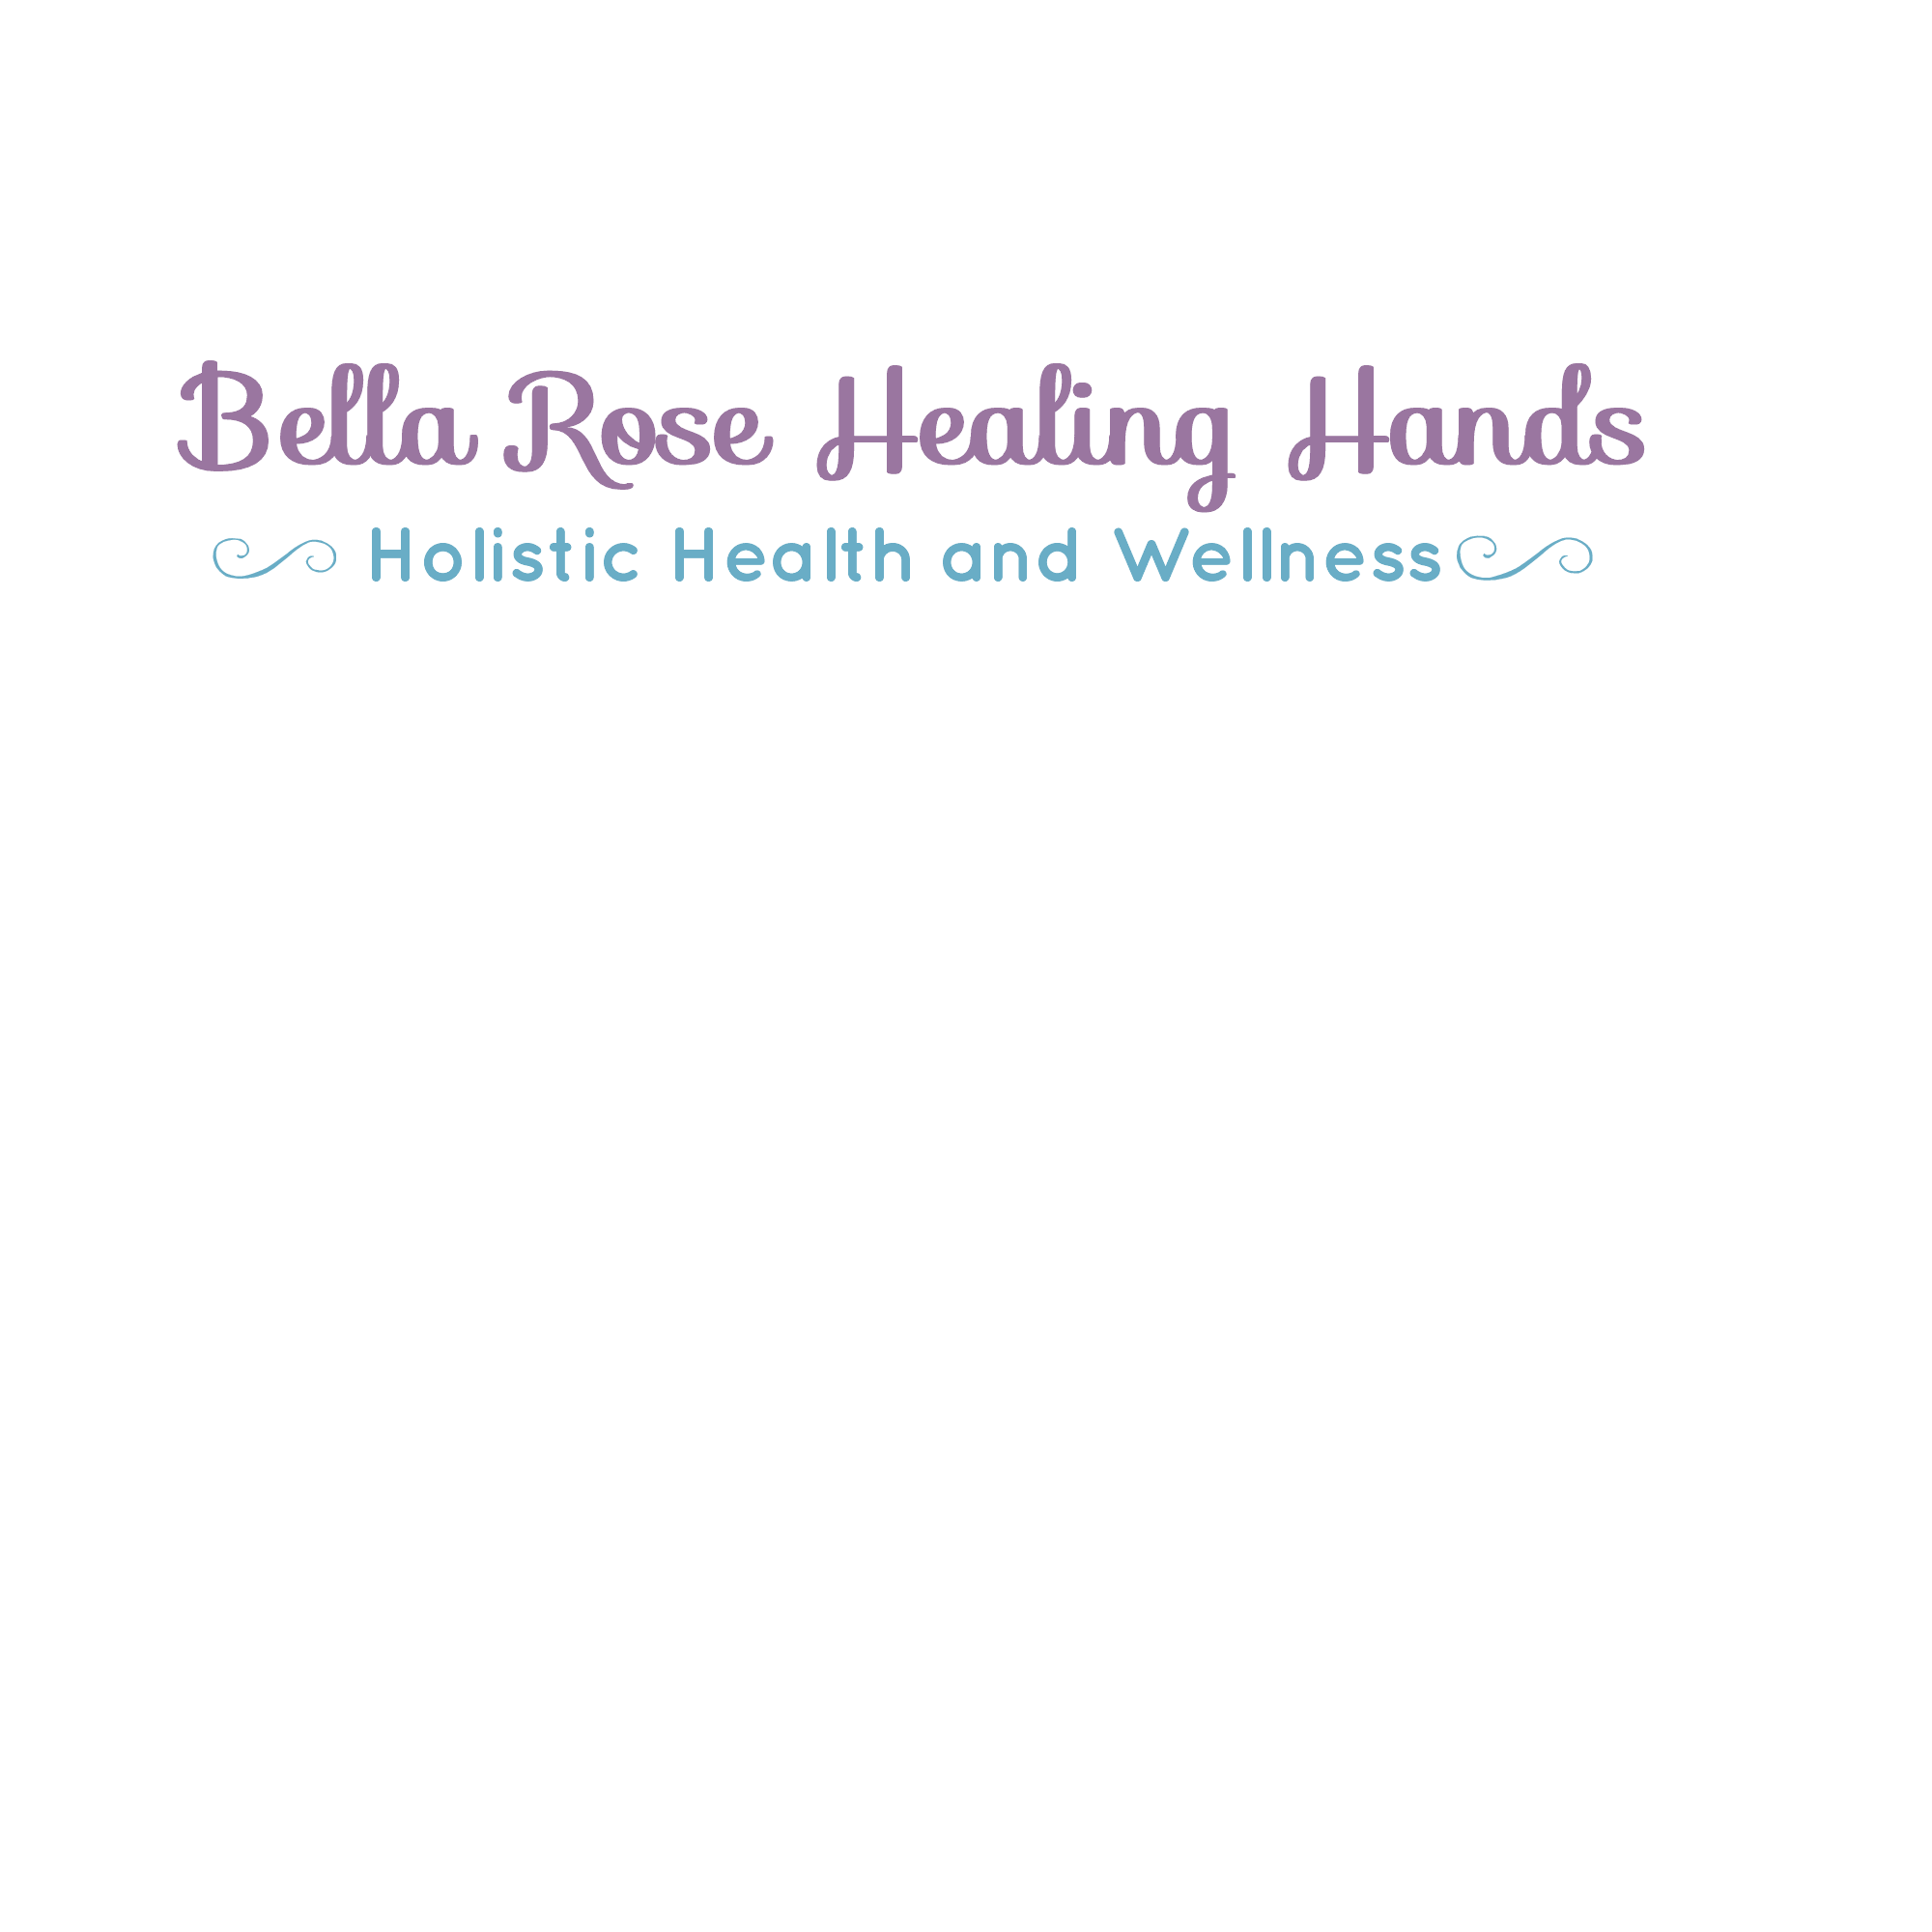 Bella Rose Healing Hands